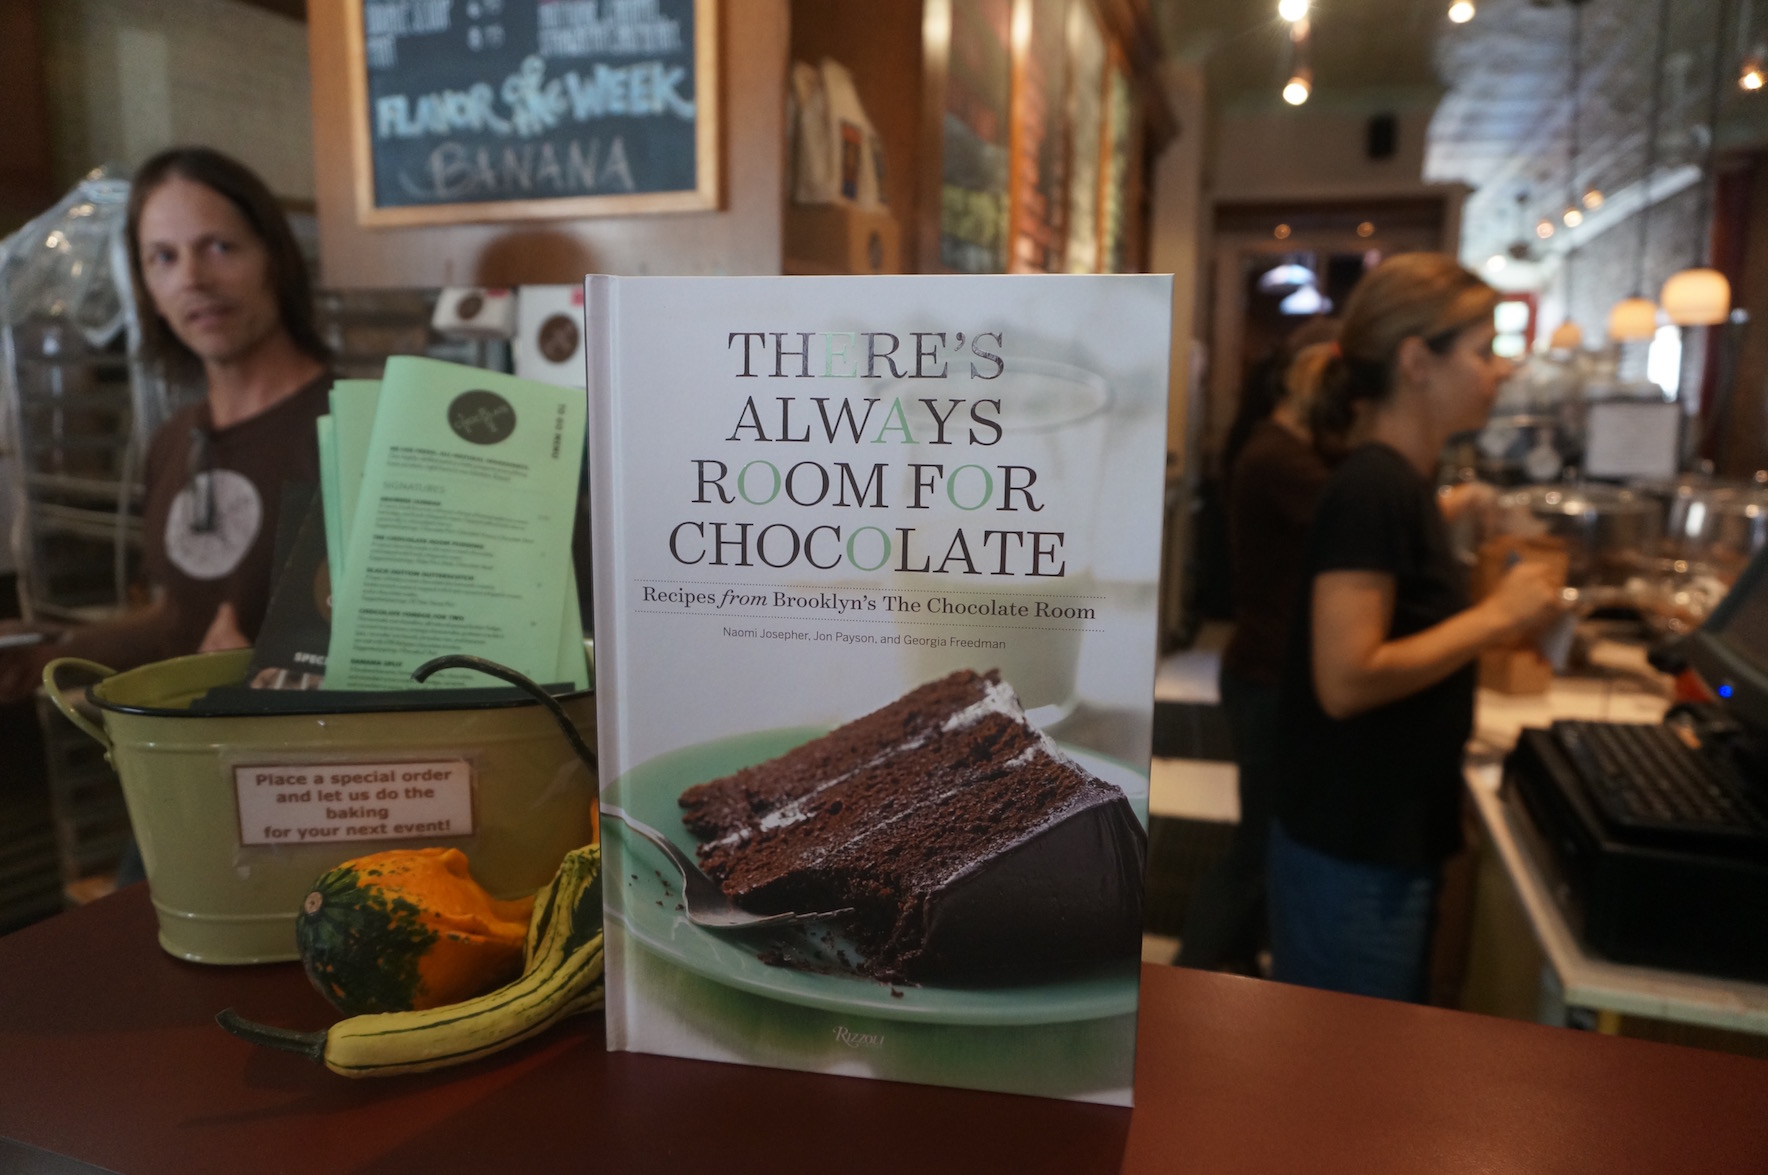 the-chocolate-room-brooklyn-theres-allways-room-for-chocolate ...